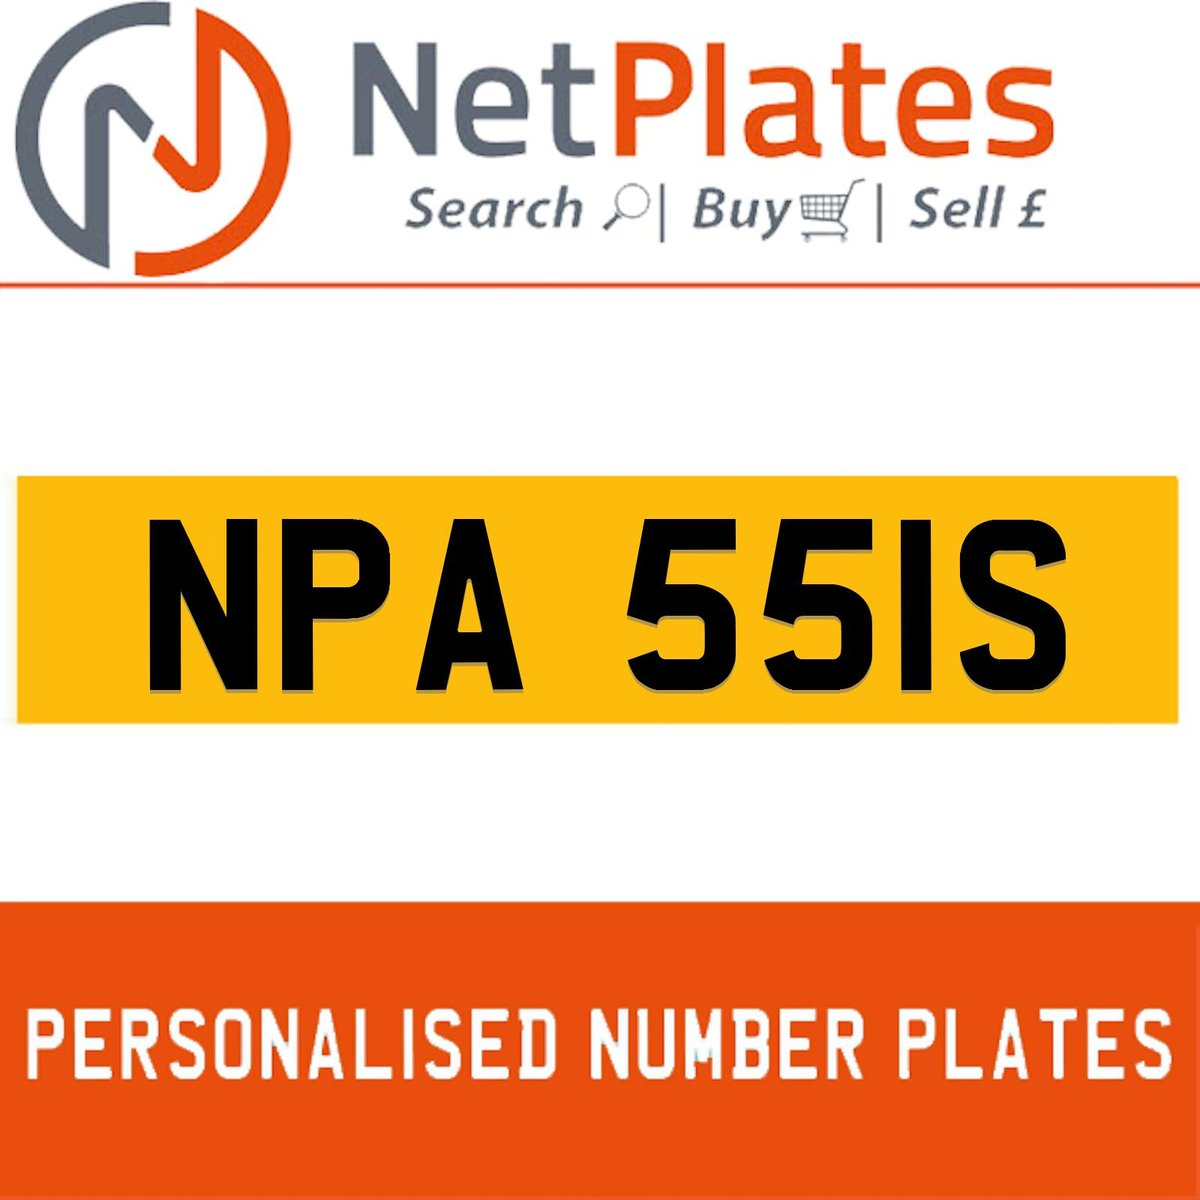 NPA 551S PERSONALISED PRIVATE CHERISHED DVLA NUMBER PLATE For Sale (picture 1 of 5)